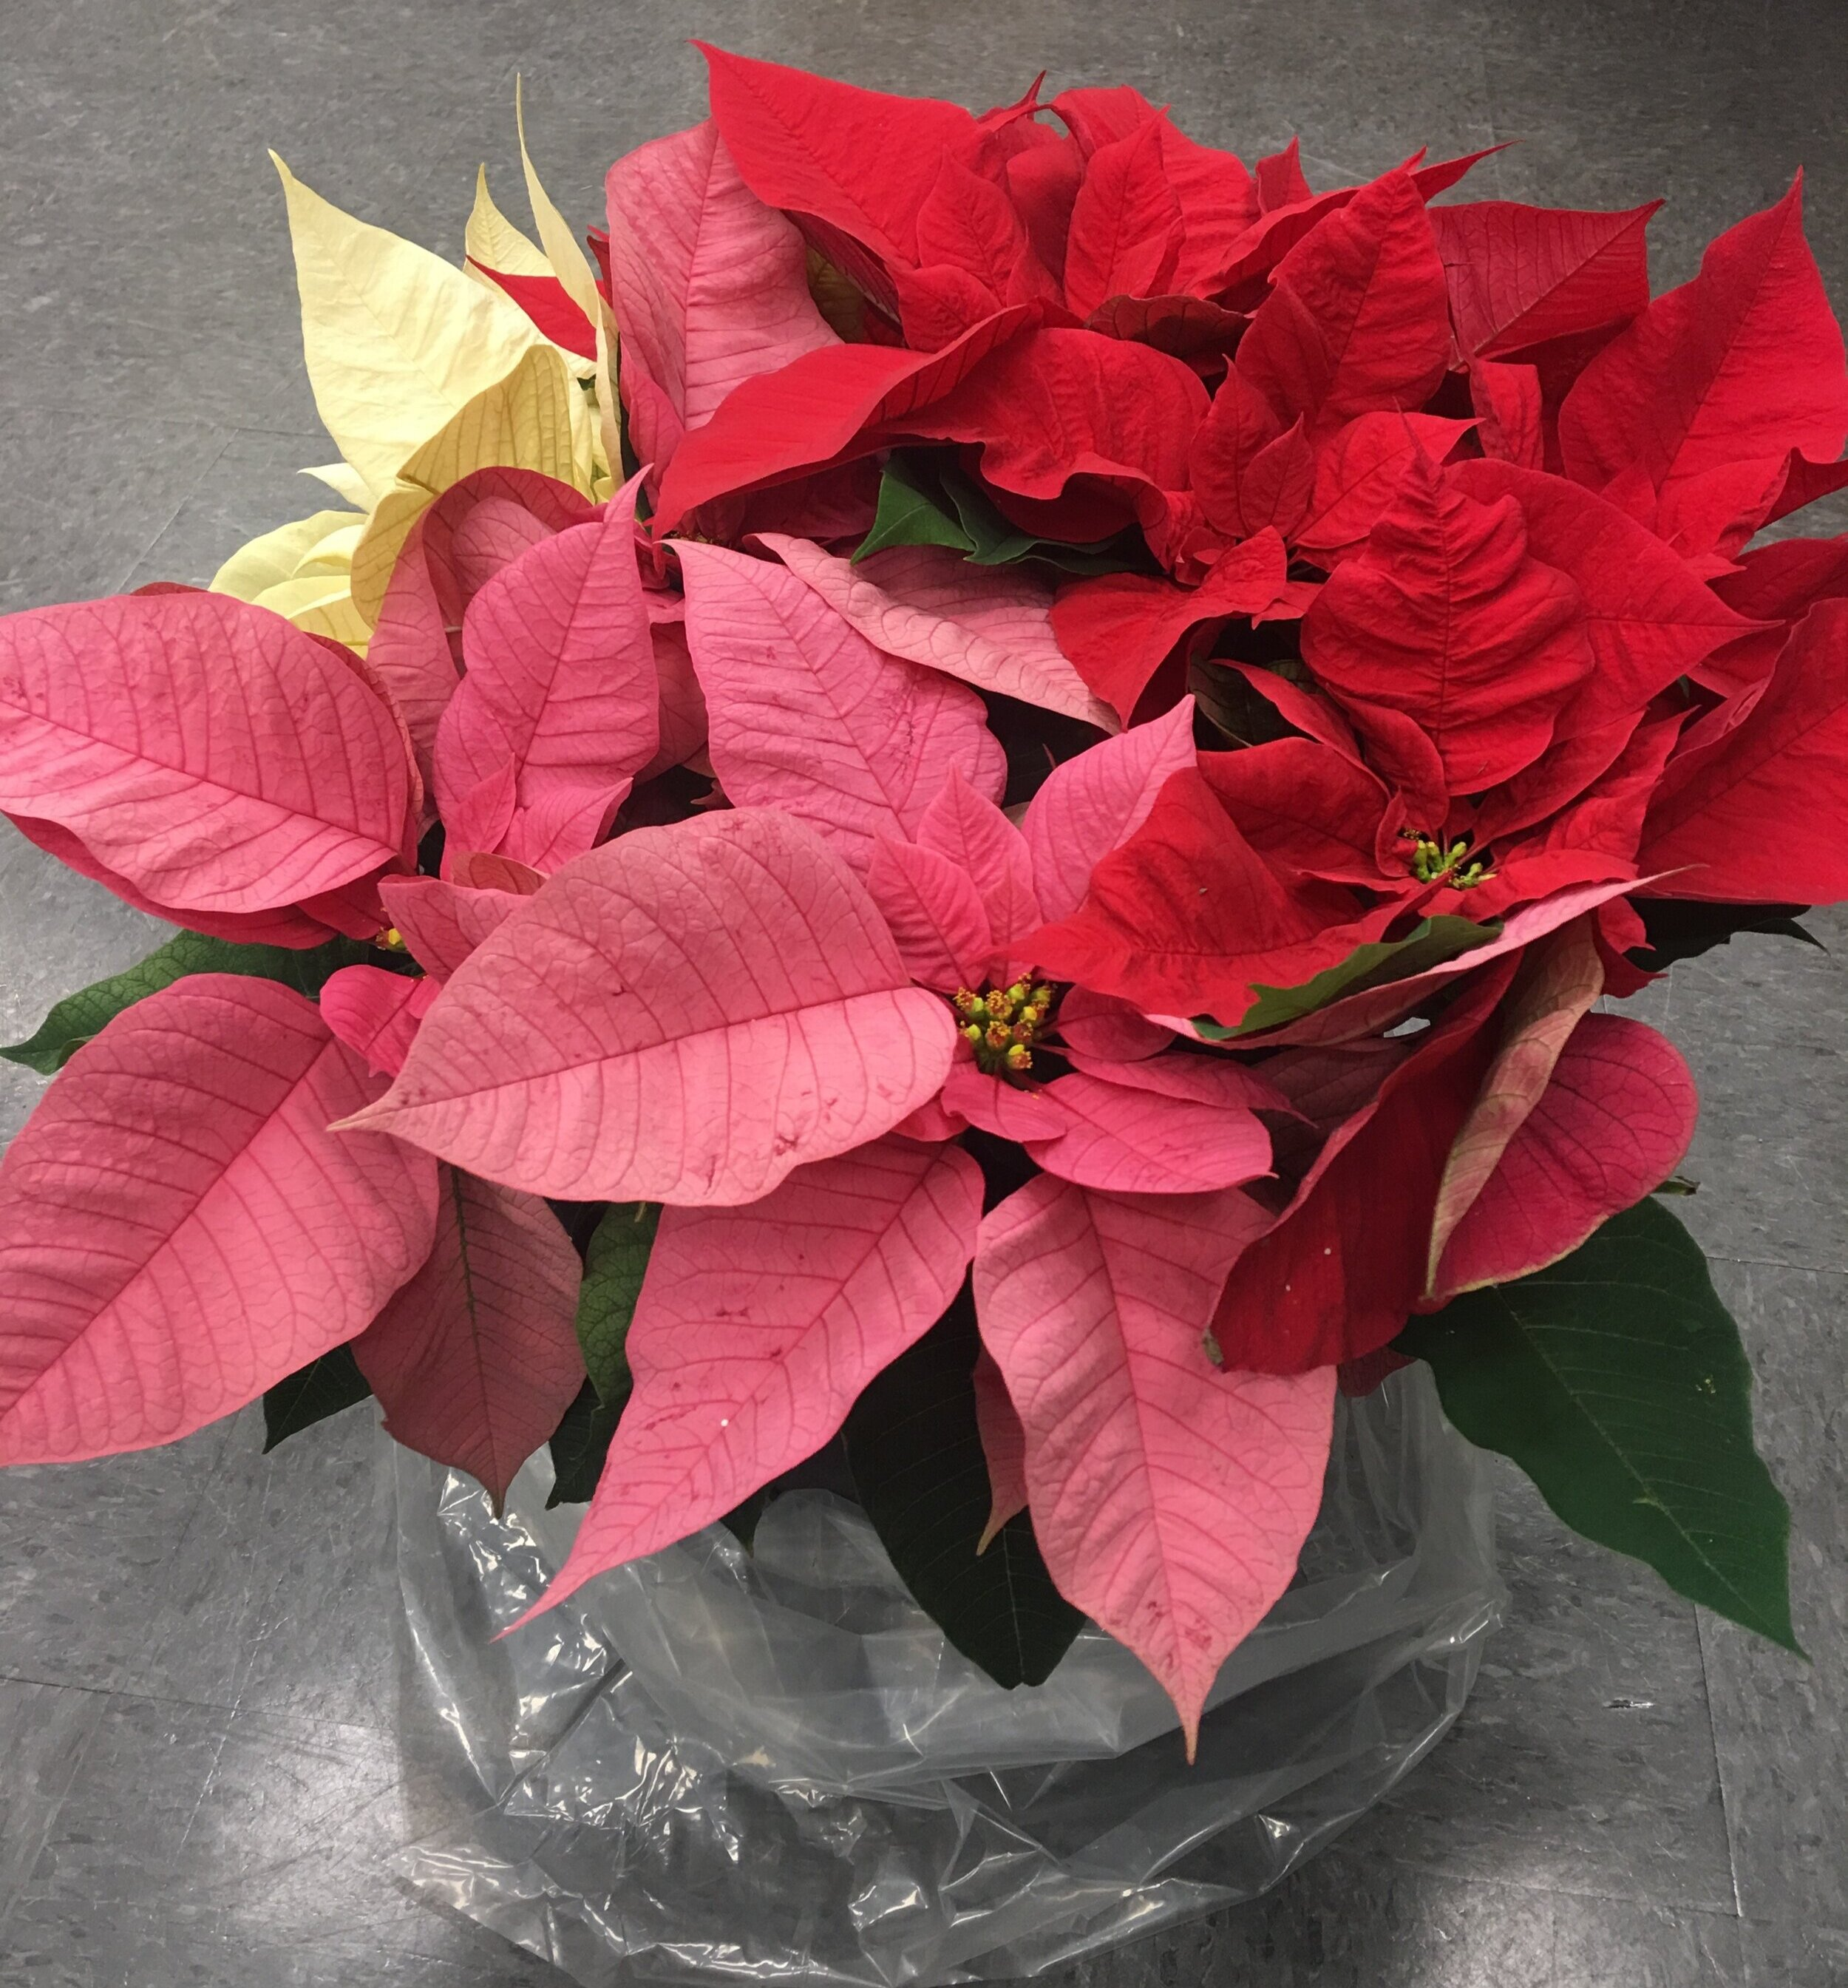 From last year's delivery, this is a 13.5 Tri-colour Poinsettia.